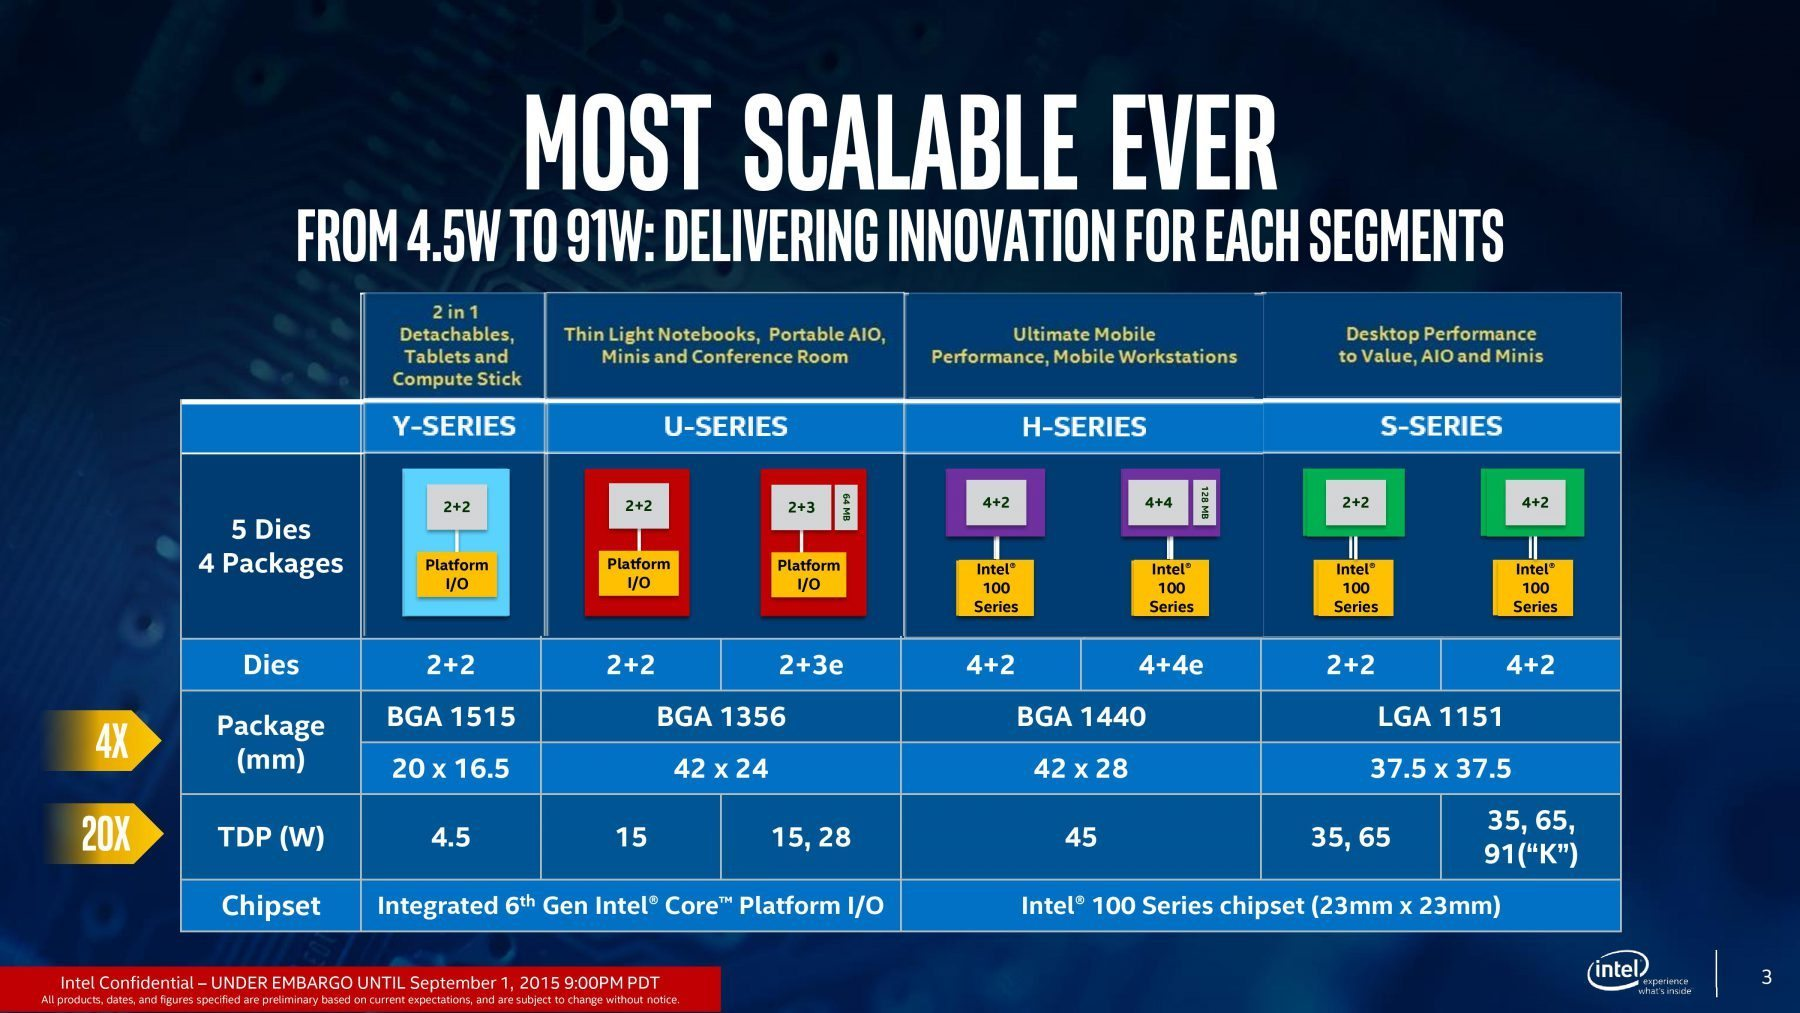 6th Gen Intel Core